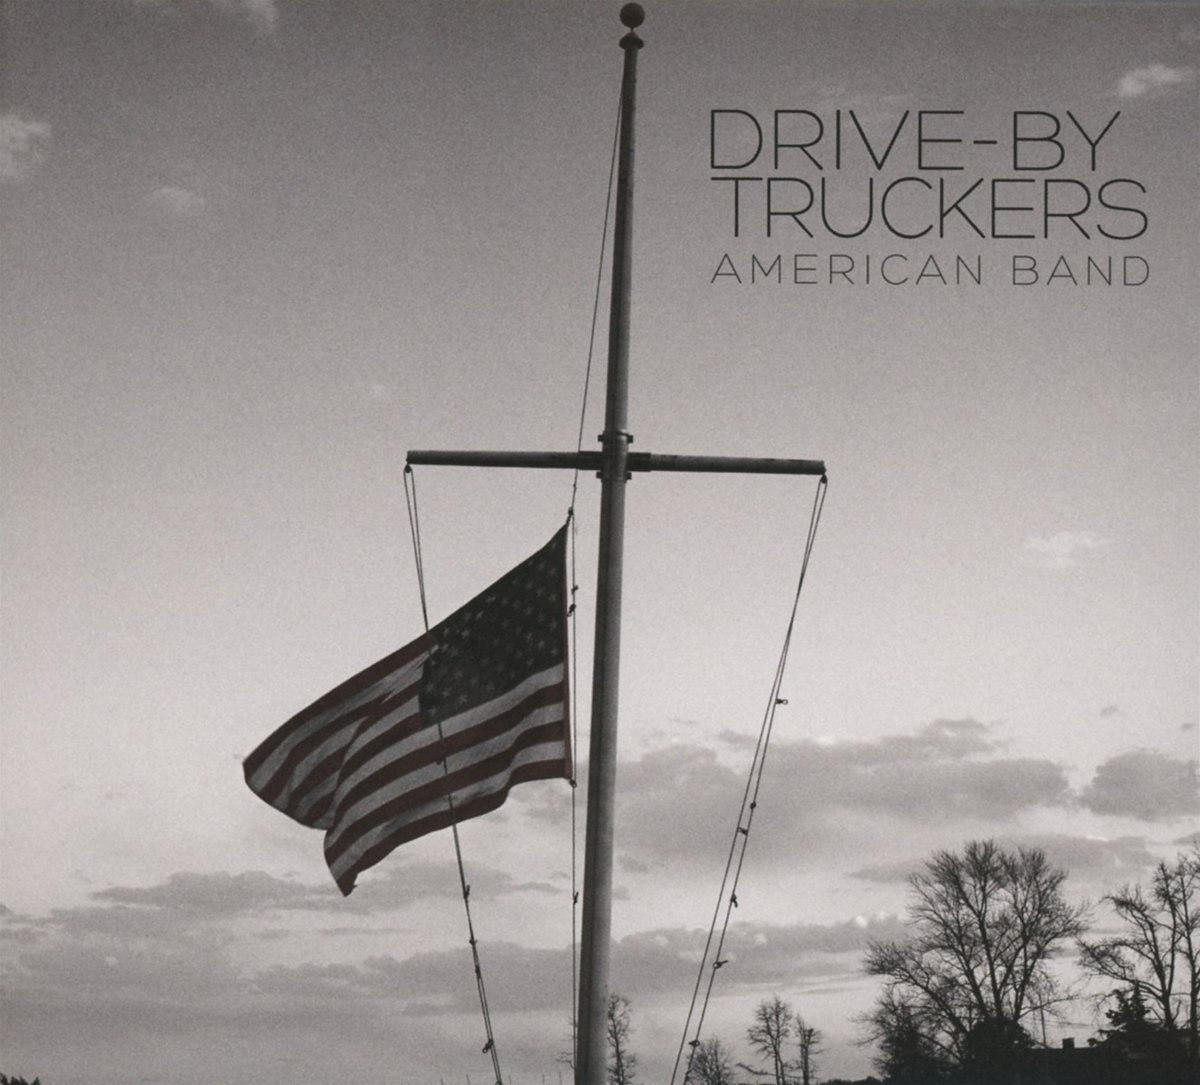 Drive-By Truckers - American Band (ATO Records)